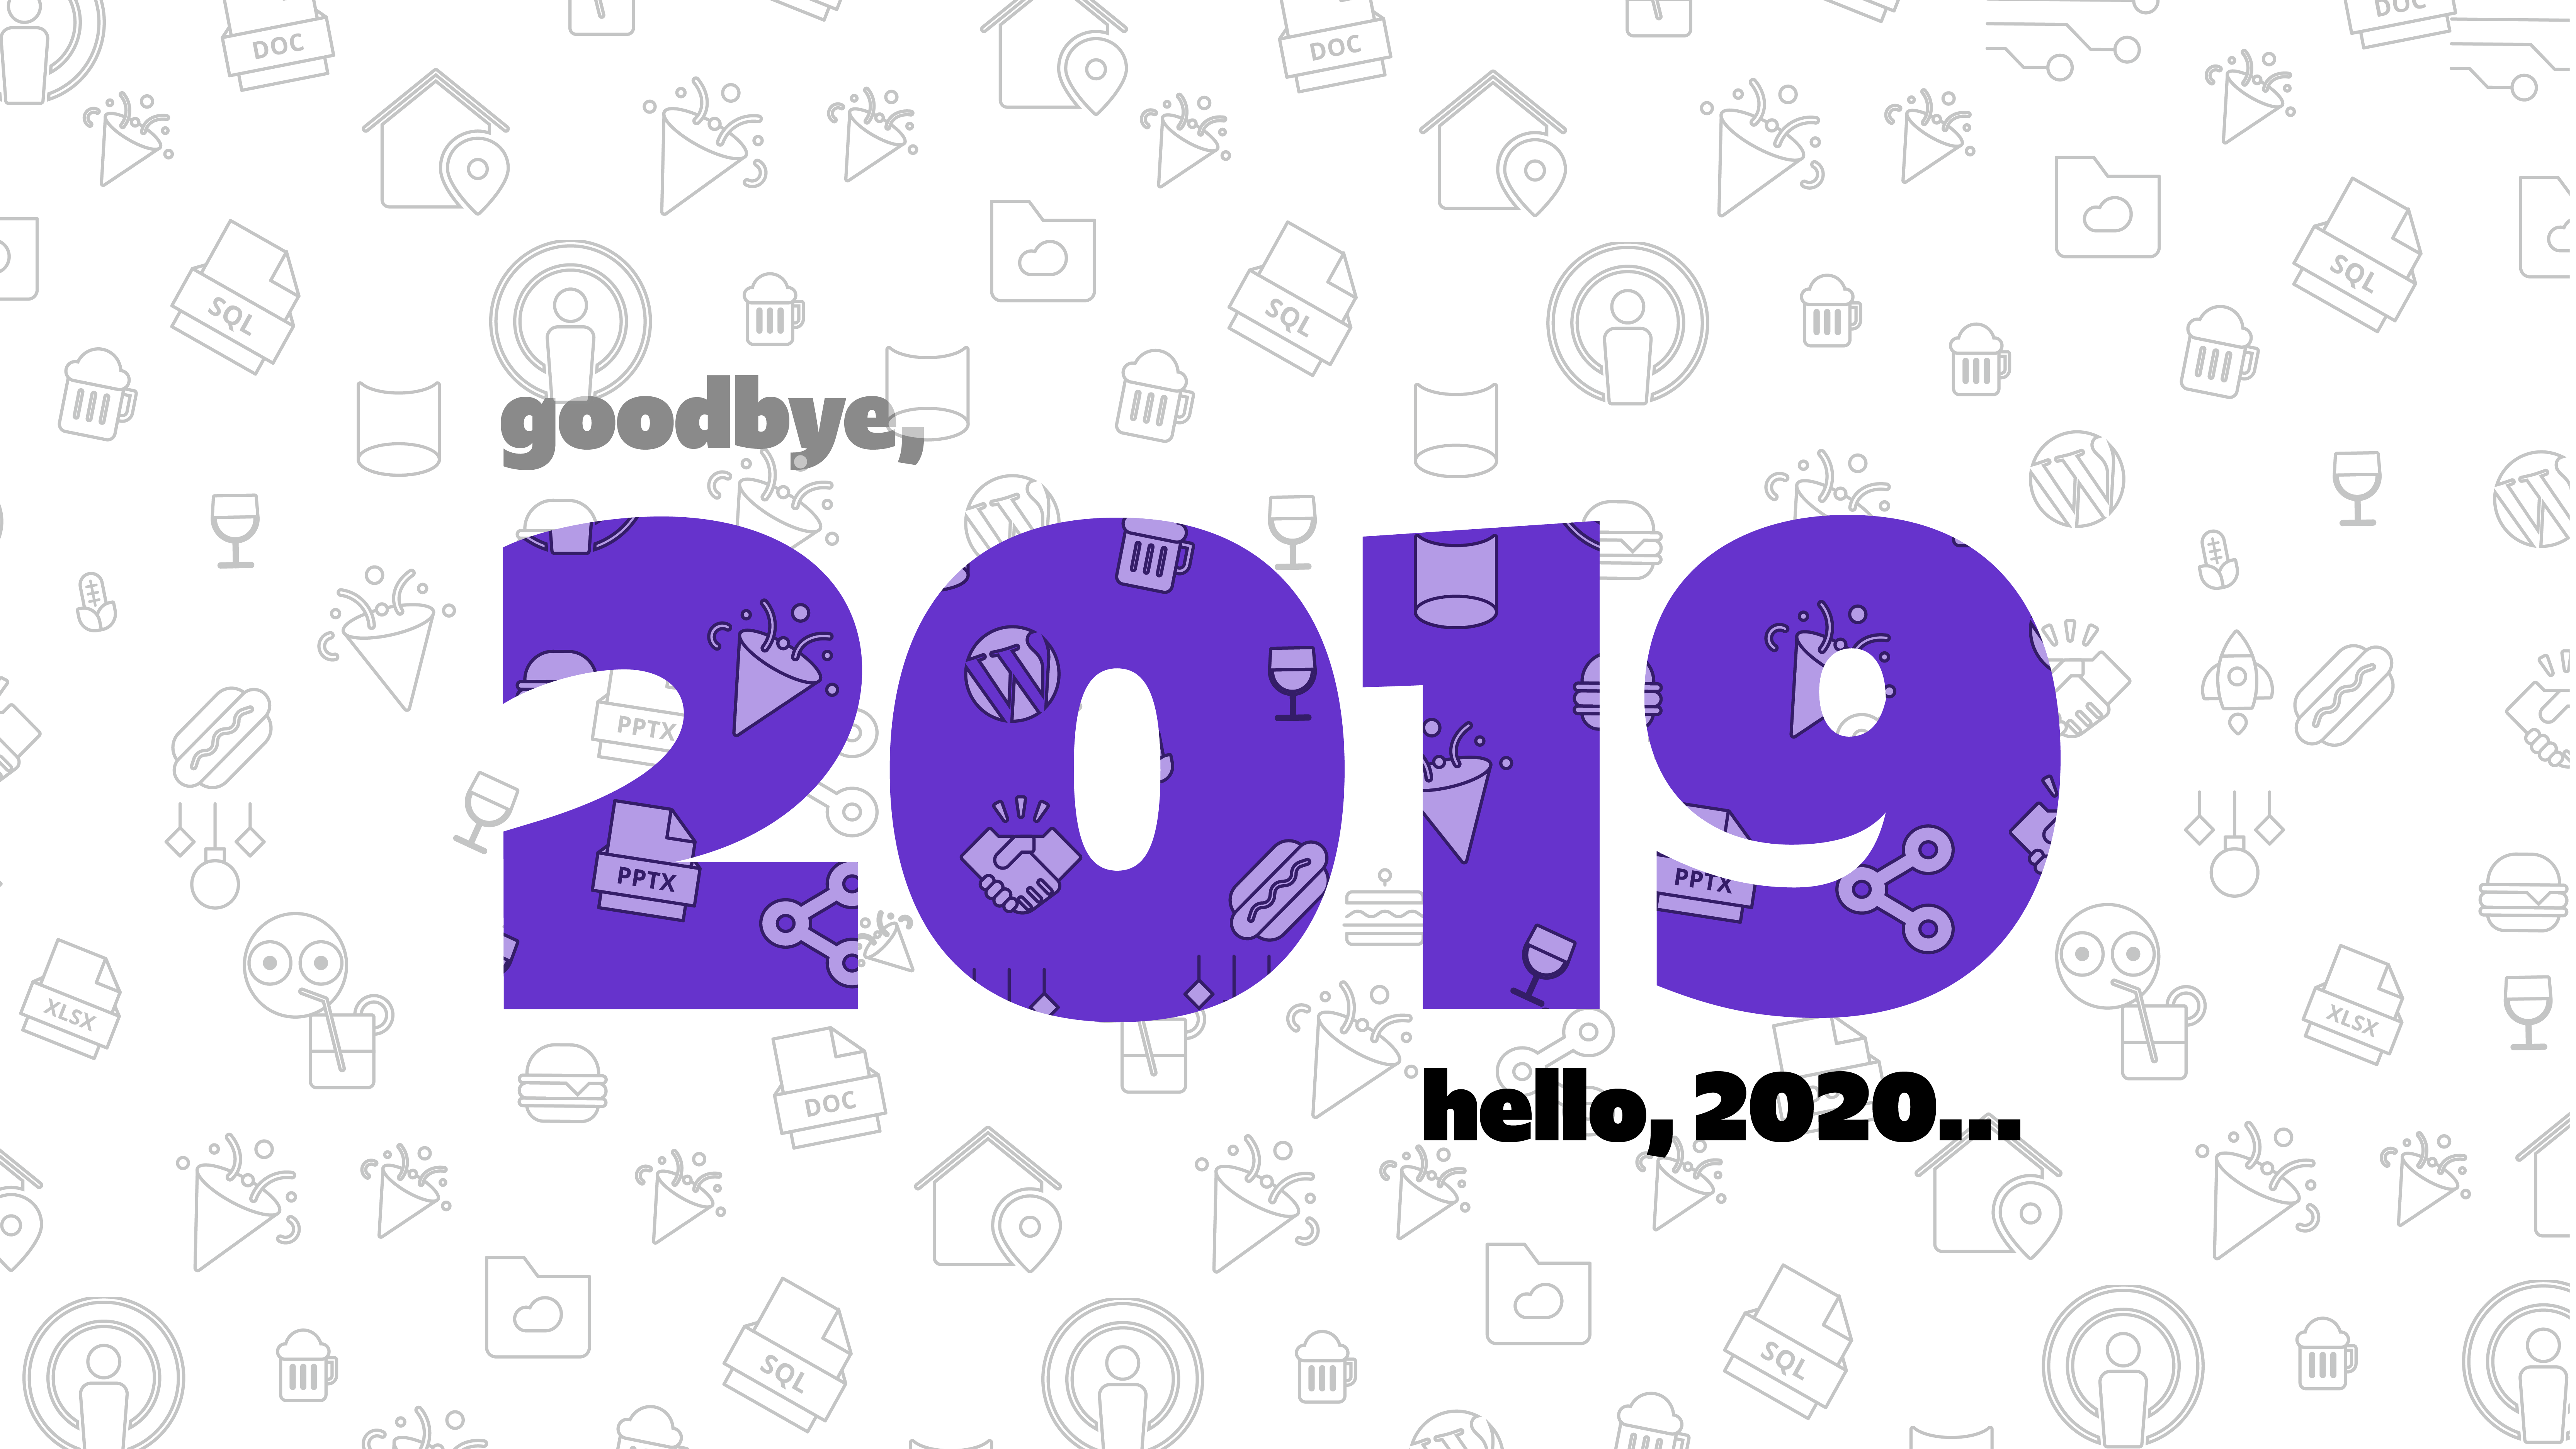 Pitchly's 2019 Year in Review